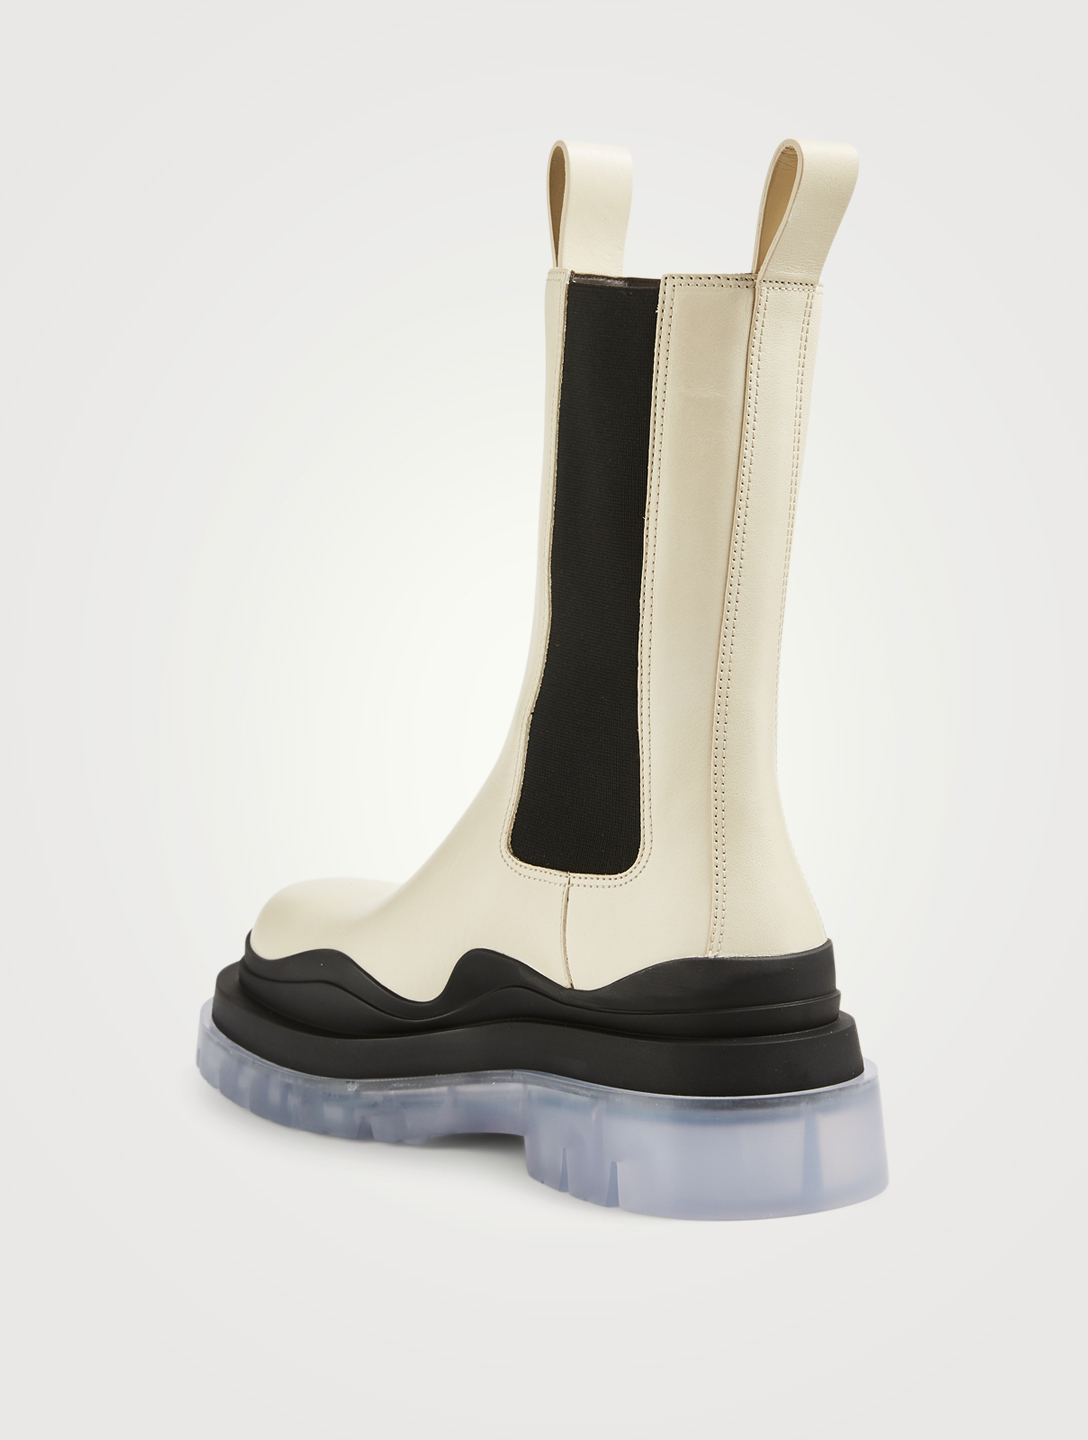 BOTTEGA VENETA Bottines cambrées The Tire en cuir Femmes Blanc